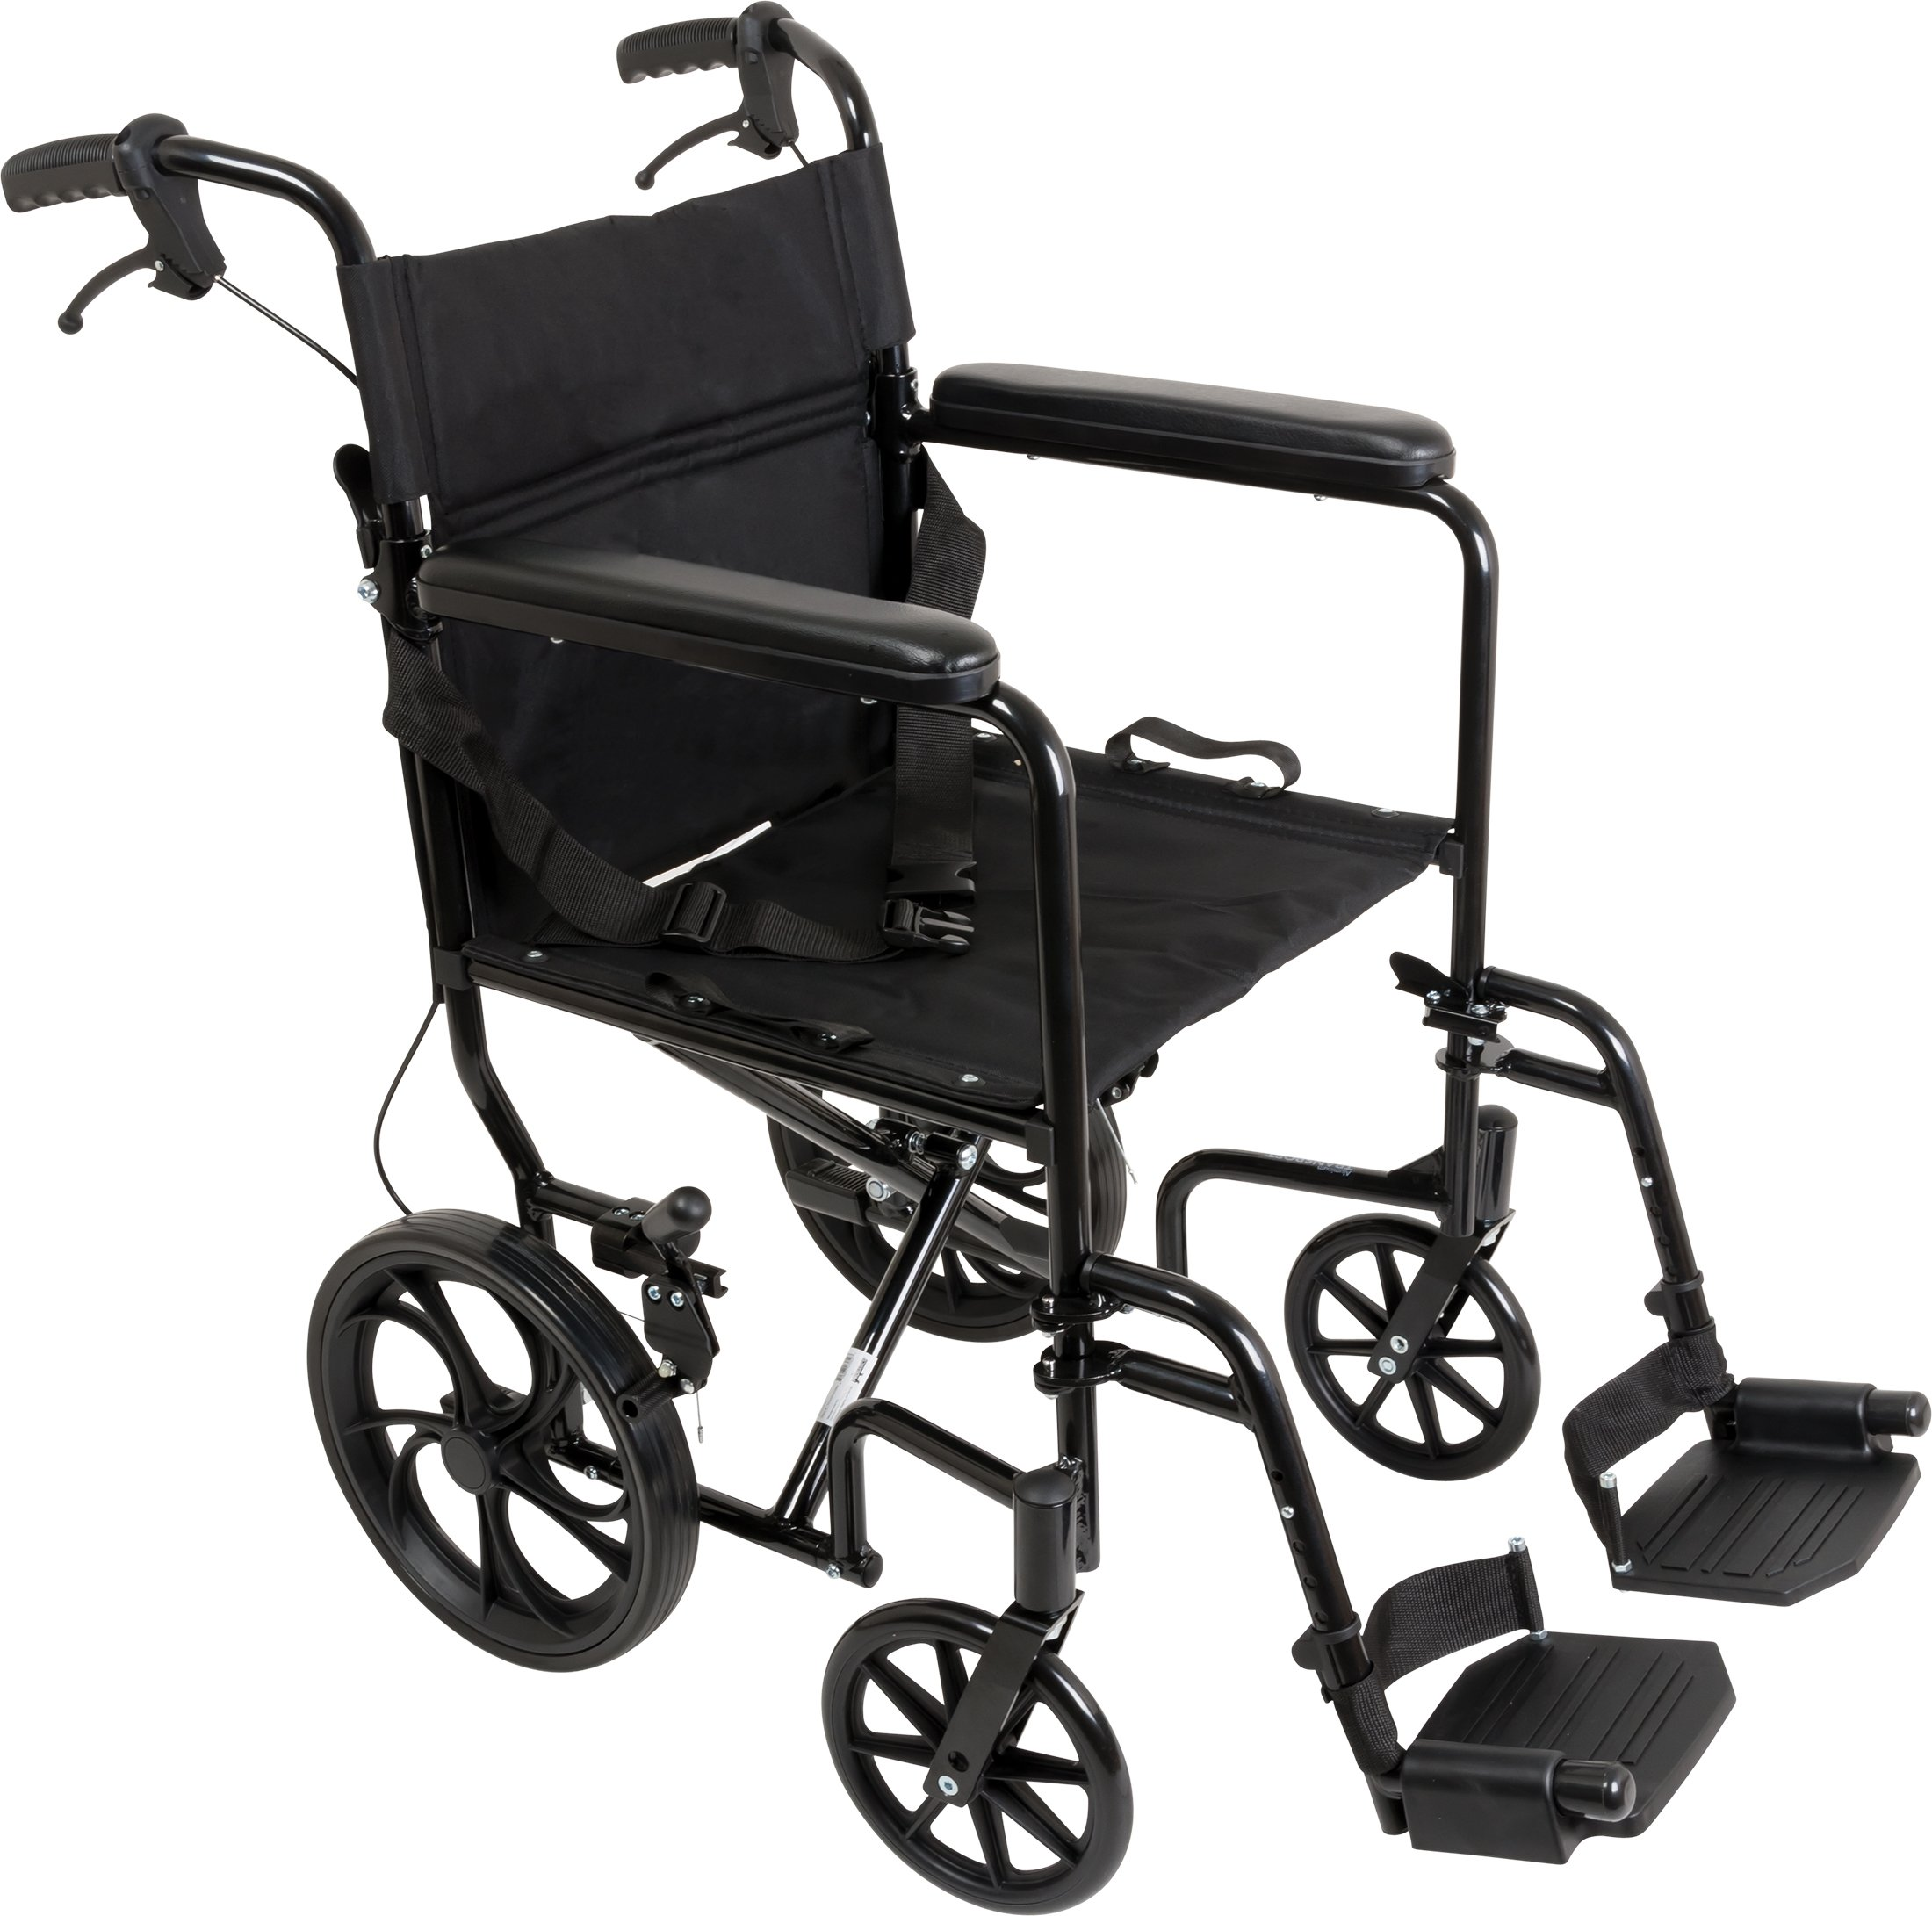 ProBasics Aluminum Transport Wheelchair With 19 Inch Seat - Foldable Wheel Chair For Transporting And Storage - 12-inch Rear Wheels For Smoother Ride, 300 LB Weight Capacity by Roscoe Medical